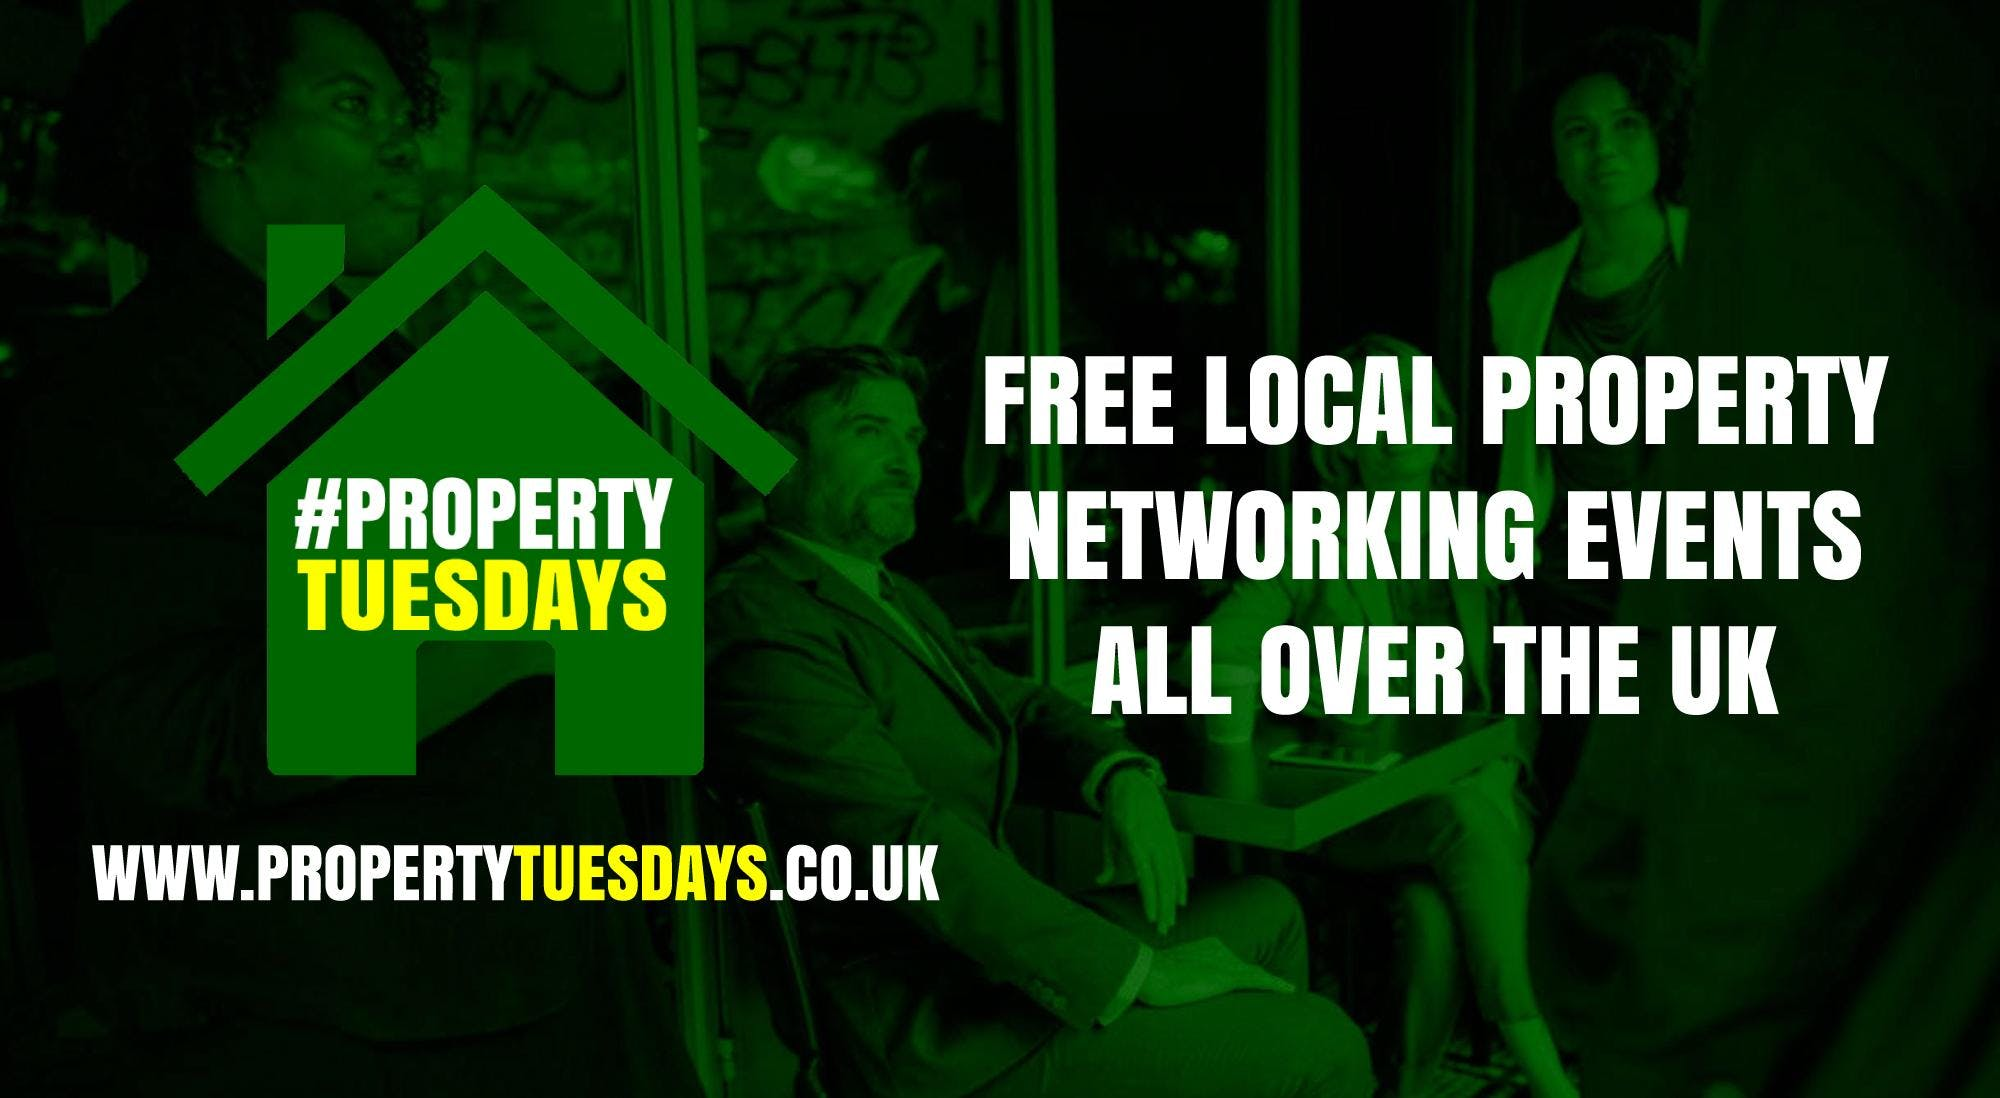 Property Tuesdays! Free property networking event in Moseley